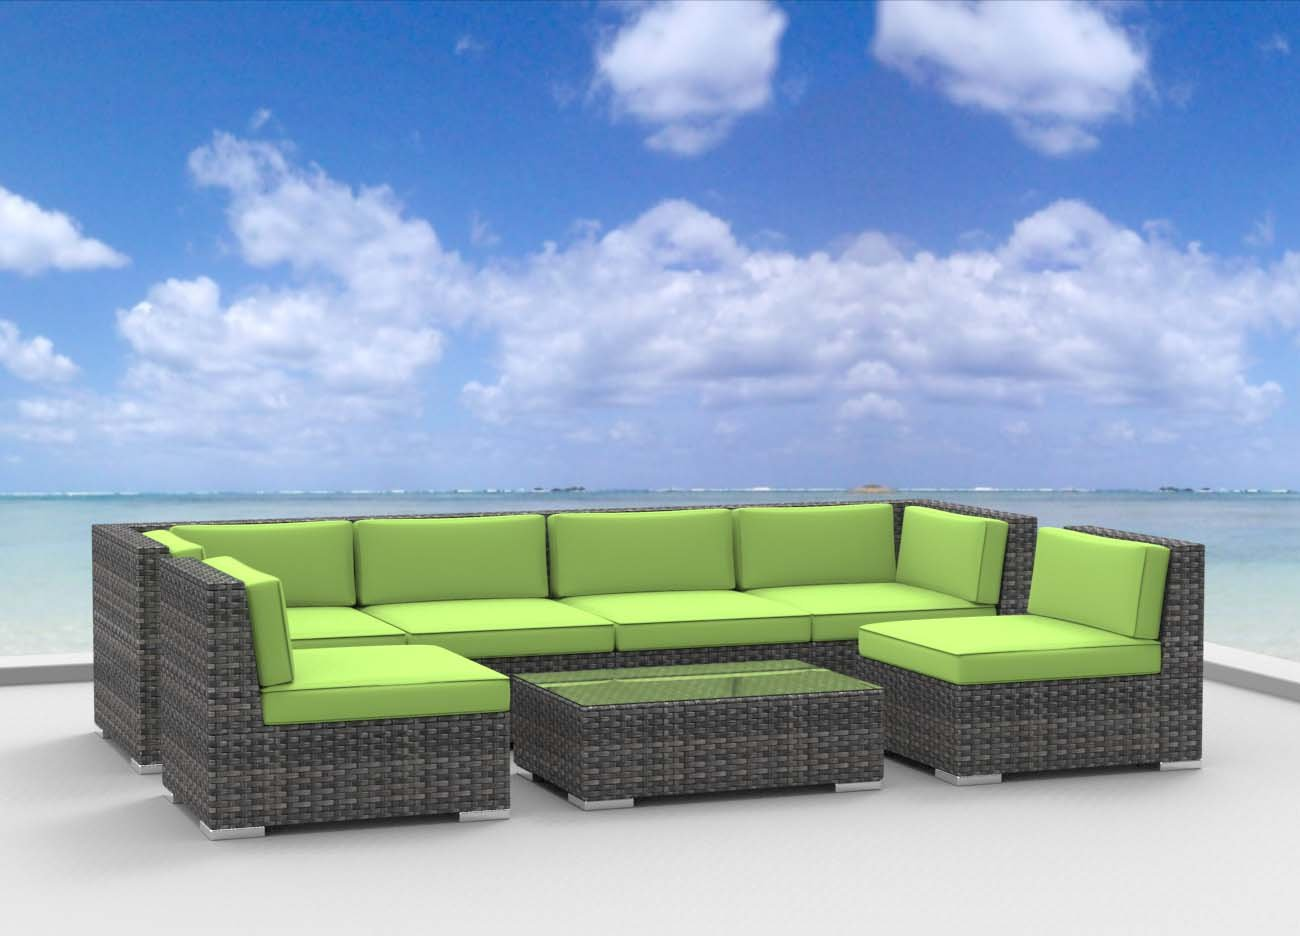 UrbanFurnishing.net - OAHU 7pc Modern Outdoor Backyard Wicker Rattan Patio Furniture Sofa Sectional Couch Set at Sears.com